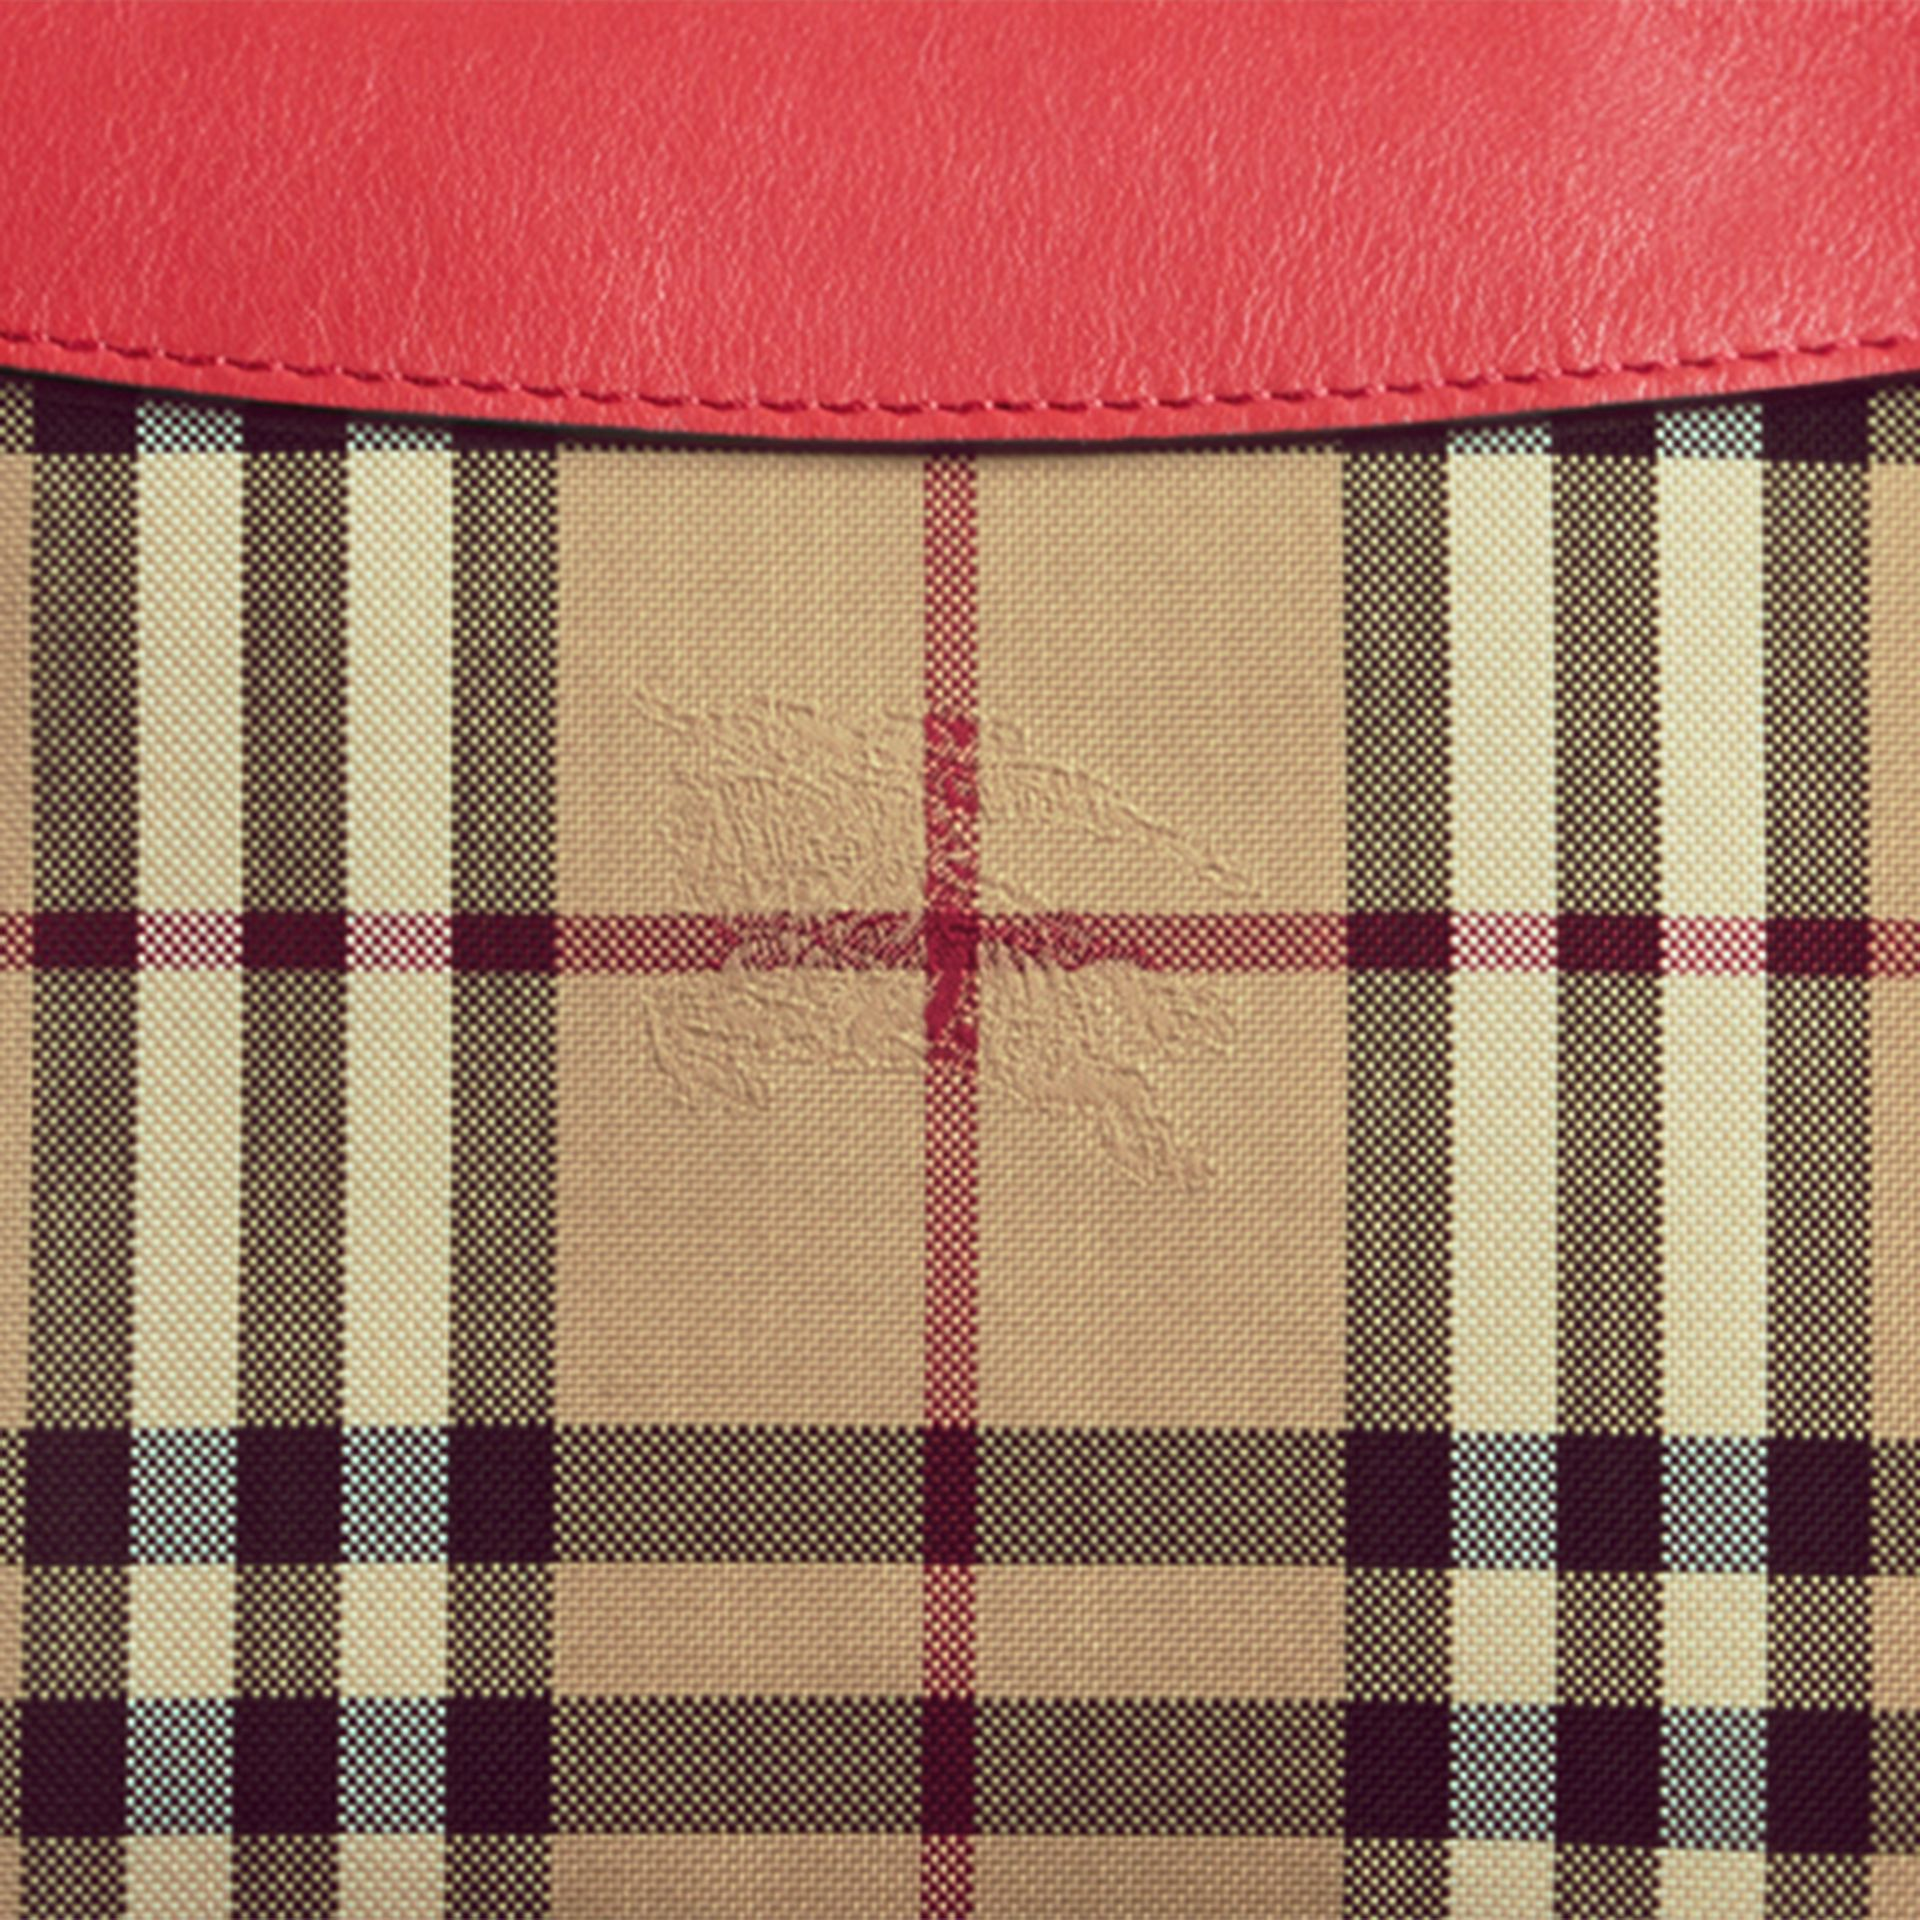 Horseferry Check and Leather Clutch Bag in Parade Red - Women | Burberry - gallery image 2